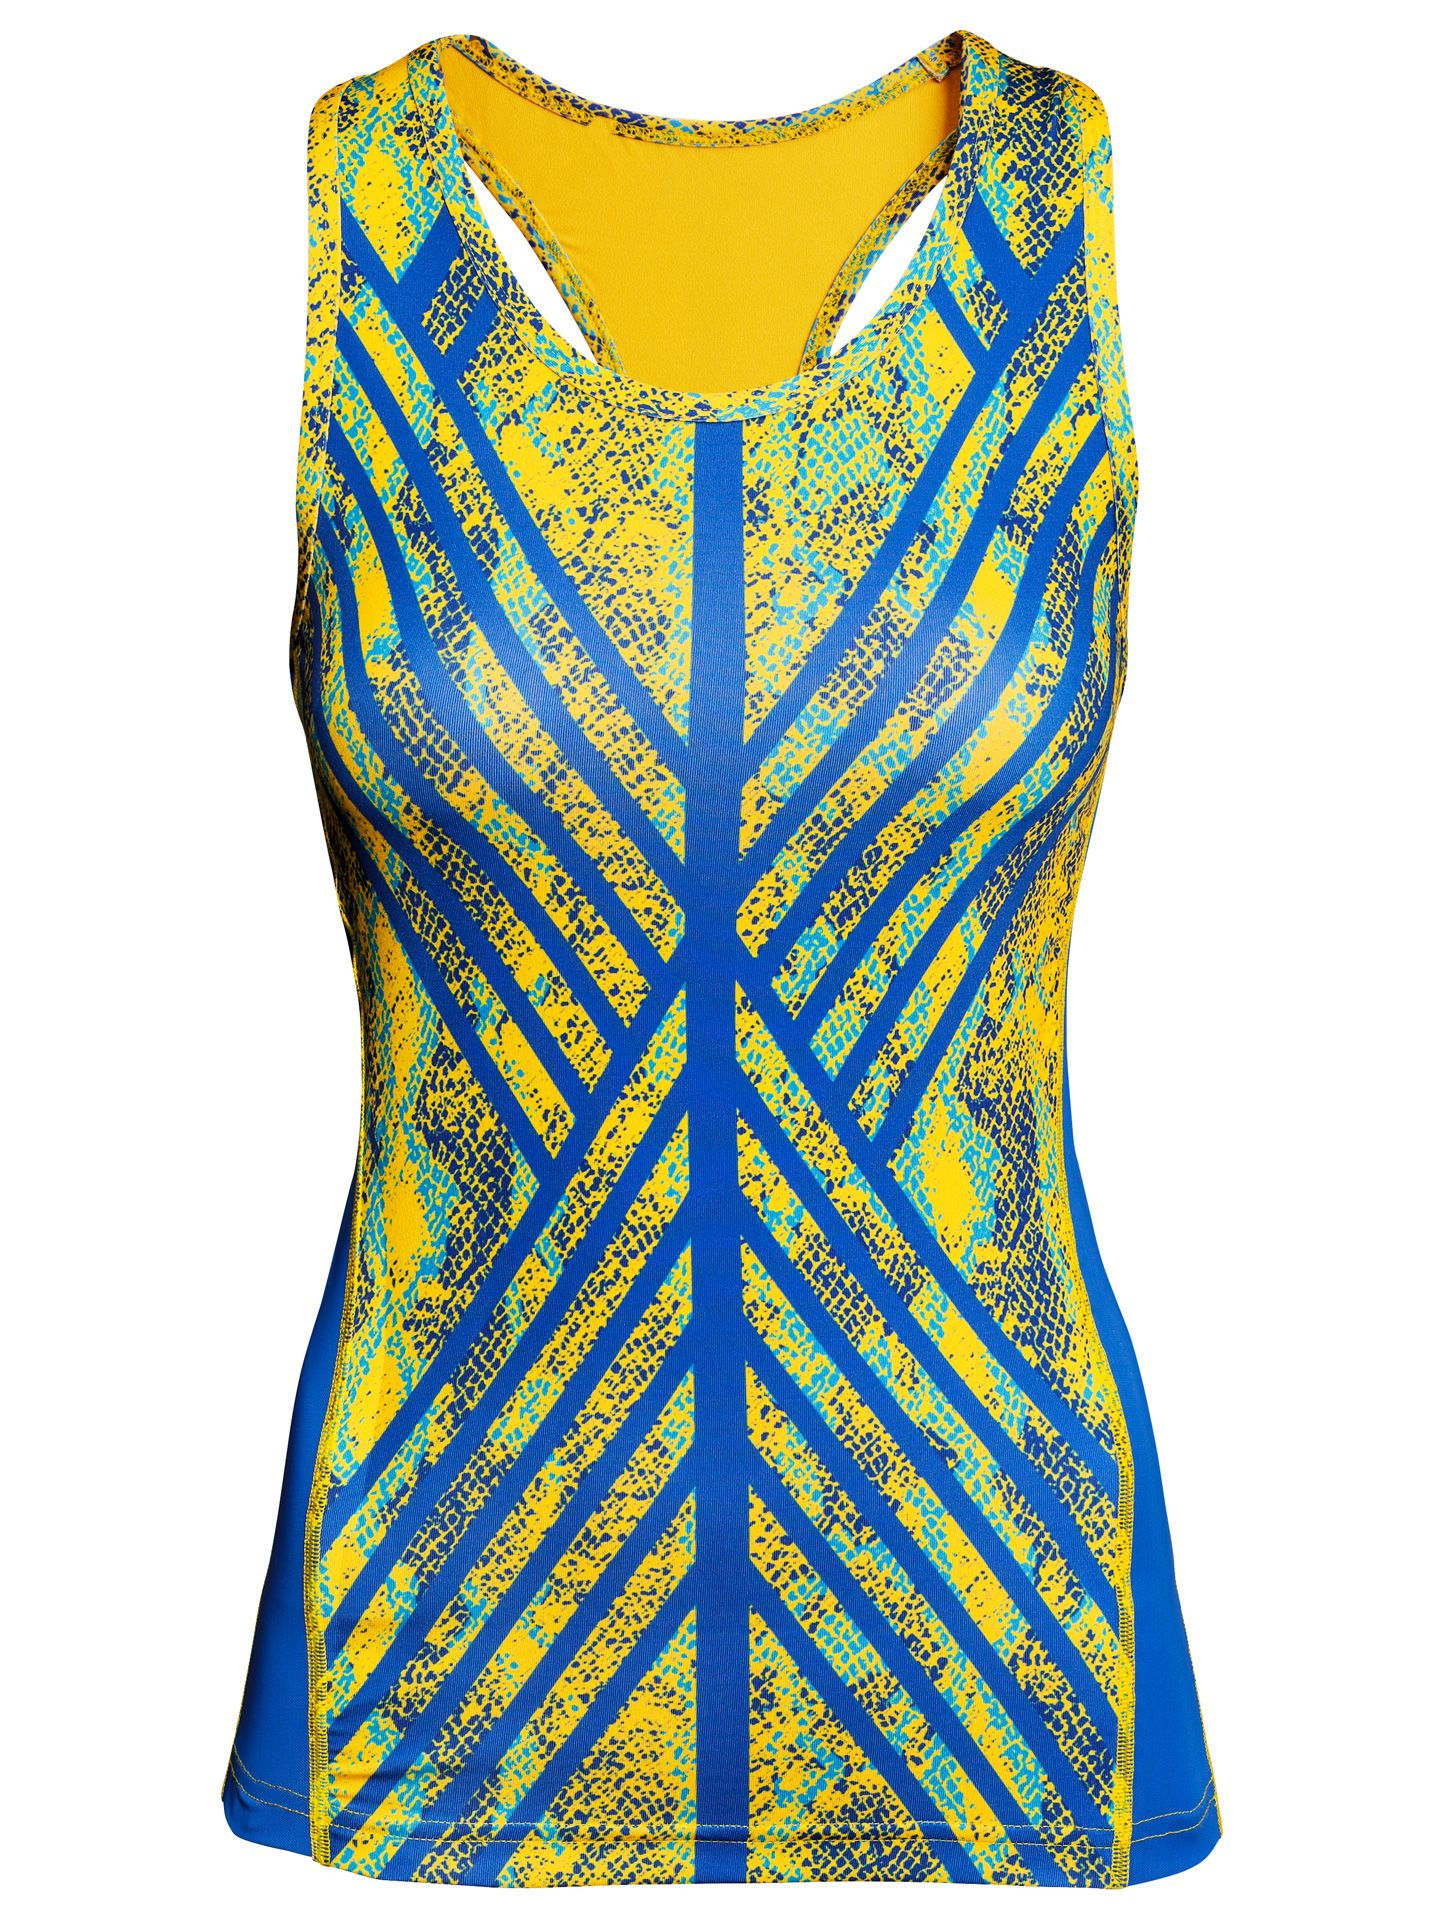 d6d300d40b84 Cool Workout Gear You'll Want To Rock Outside Of Gym Glass, Too